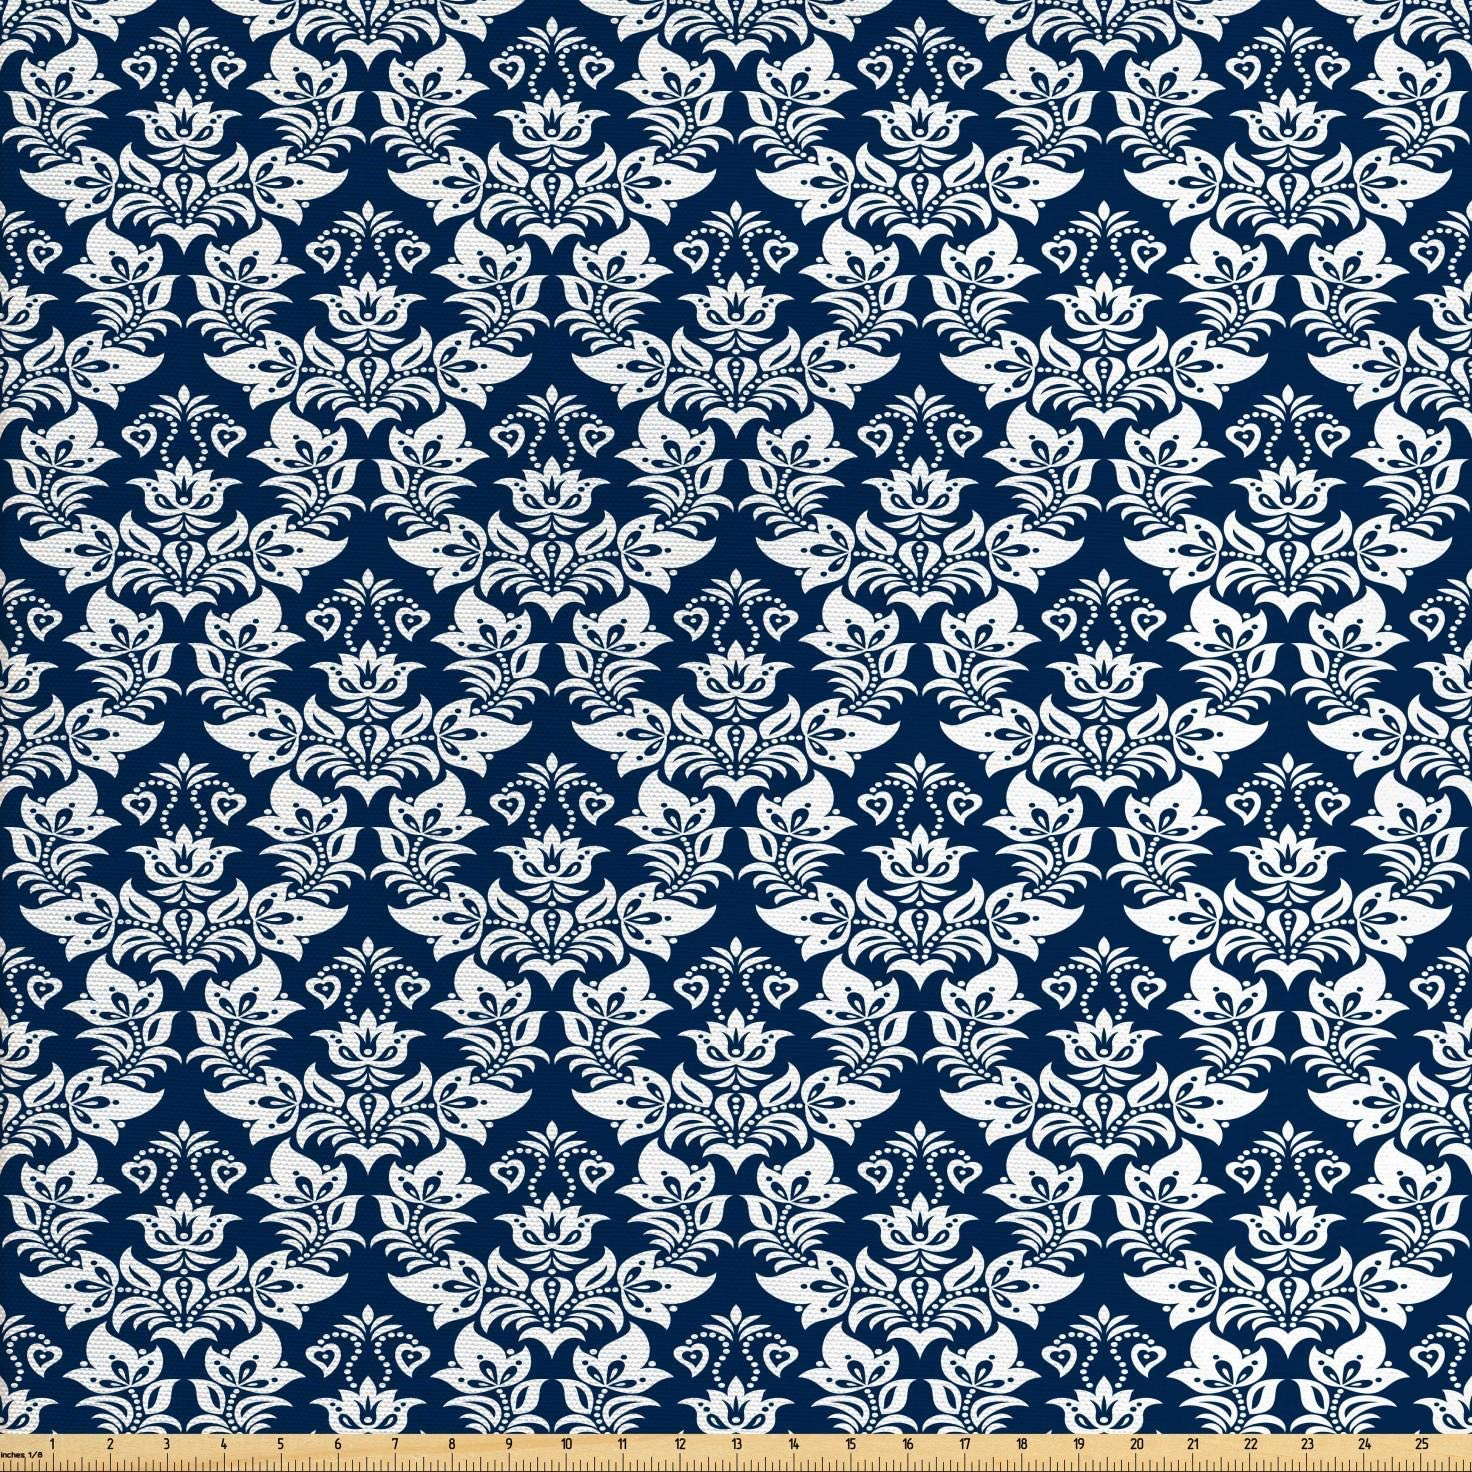 Ambesonne Damask Fabric by The Yard, Antique Floral Ornament with Baroque Curls Curves Foliage Nature Theme, Decorative Fabric for Upholstery and Home Accents, 2 Yards, Navy White